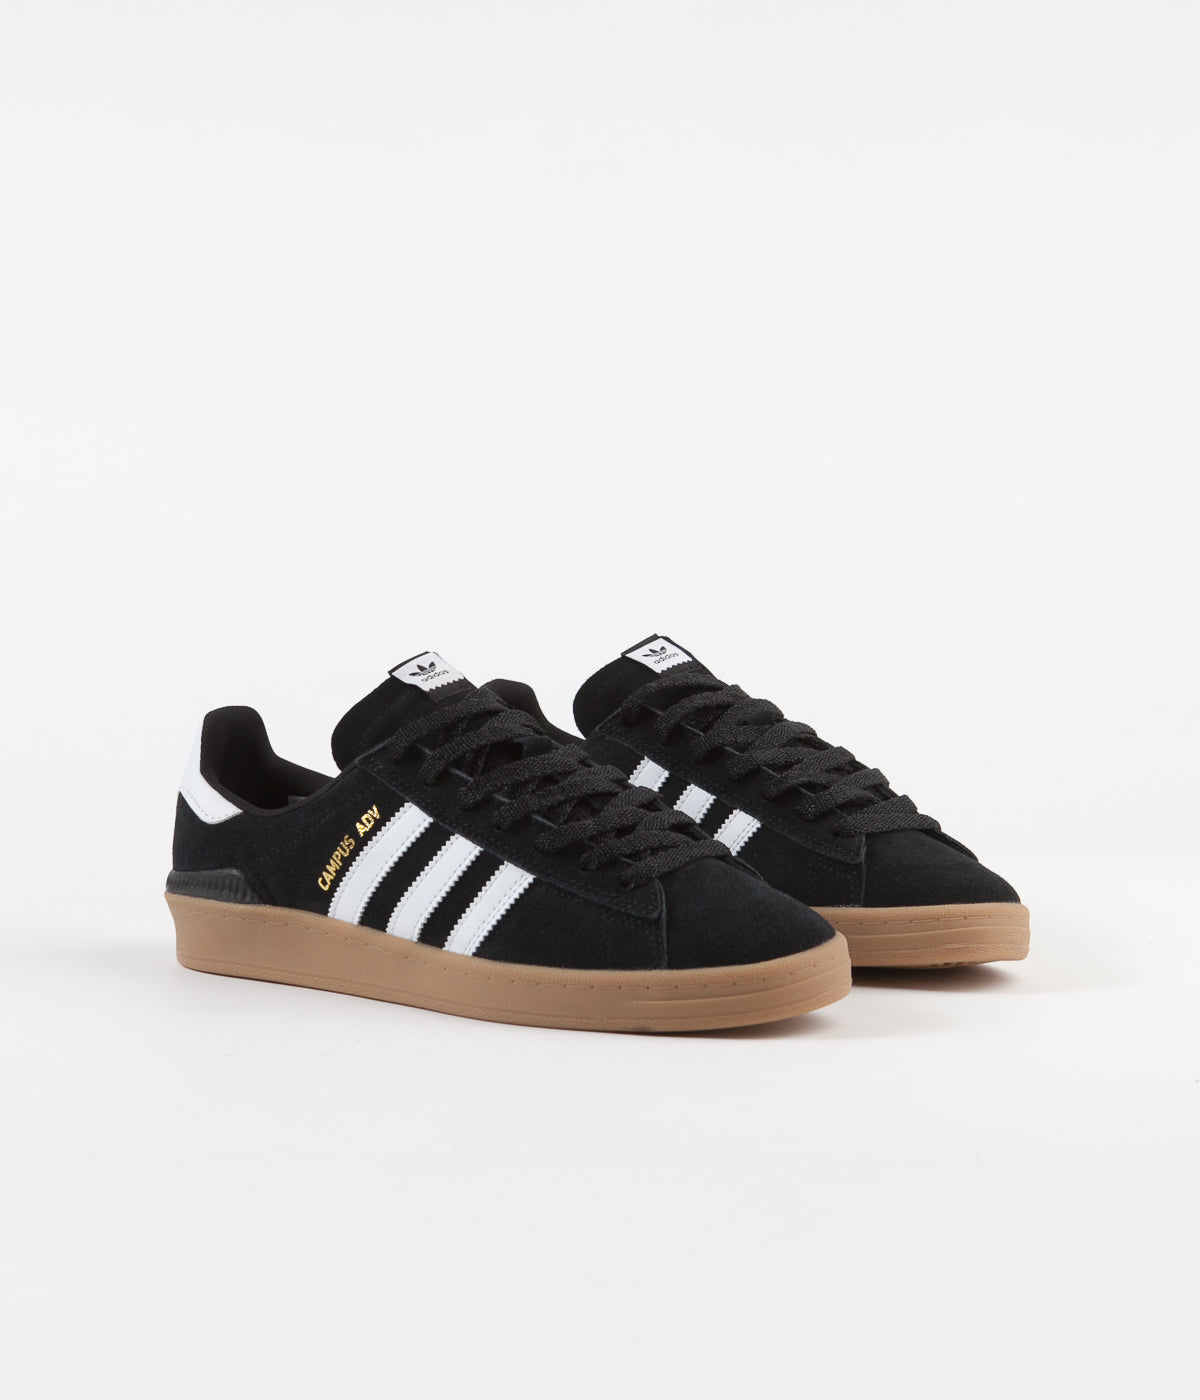 Adidas Campus Adv Shoes - Core Black / White / Gum4